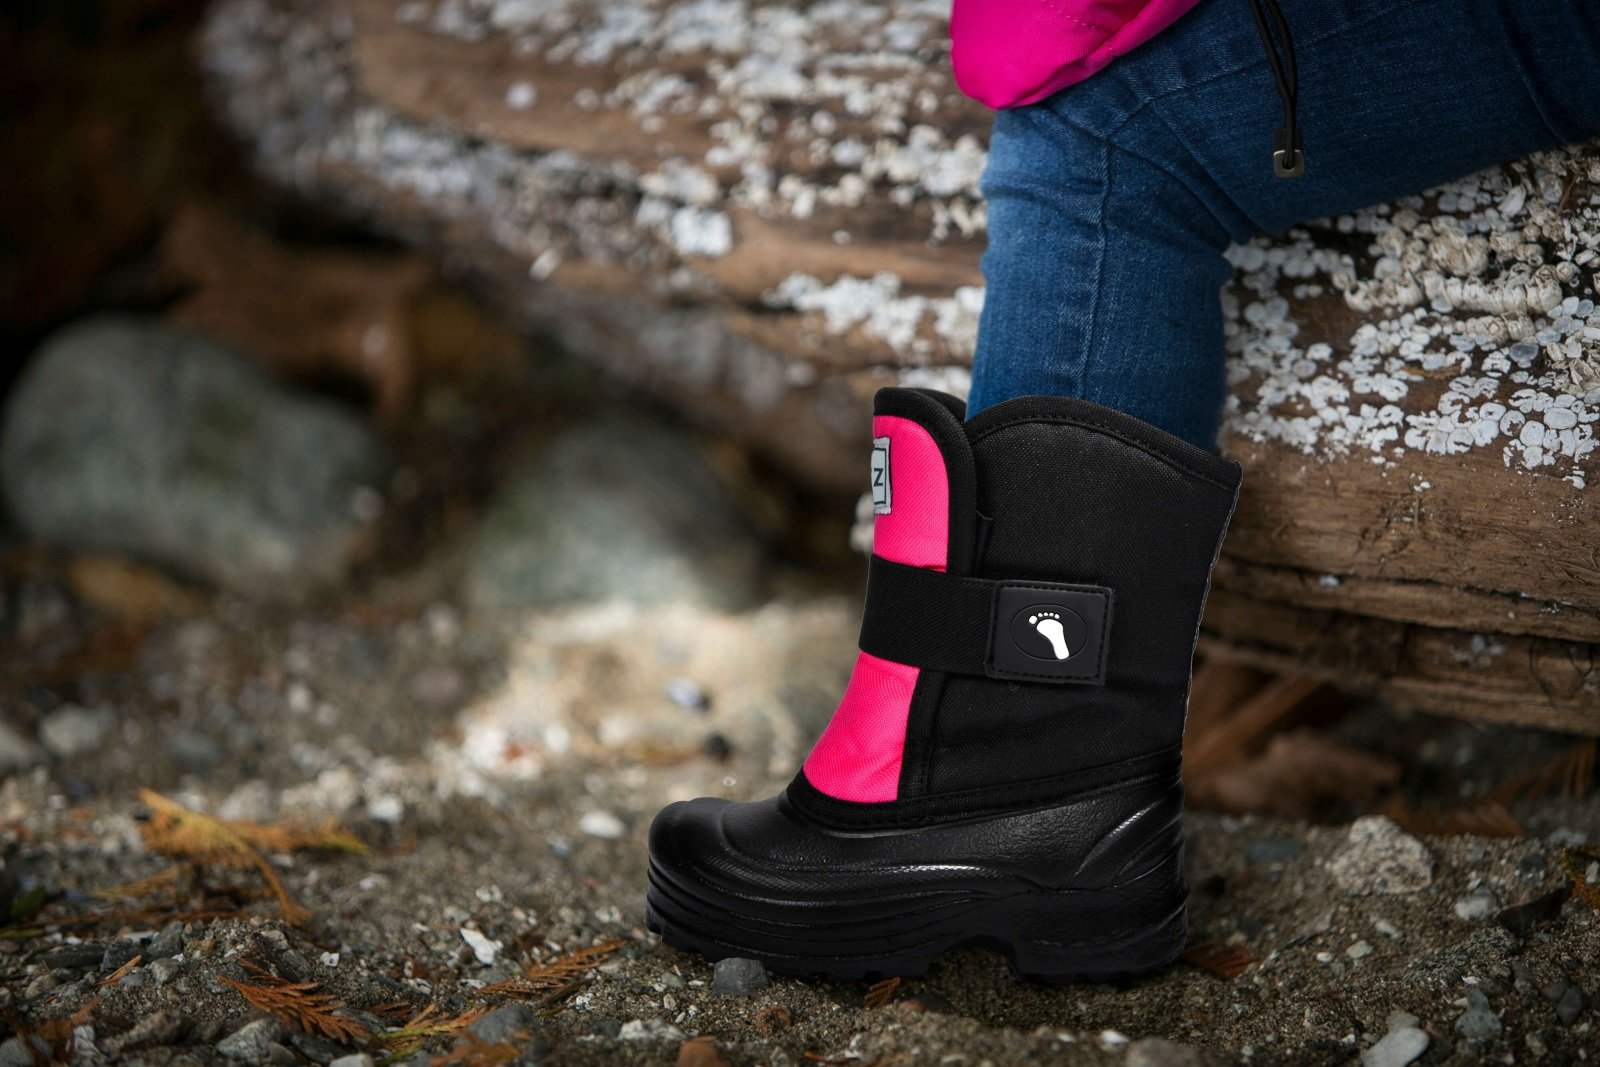 Stonz Scout Winter Boots for Cold Weather, Snow, Ice and Winter Sports - Insulated, Super Light & Warm - Pink/Black, 7T by Stonz (Image #5)